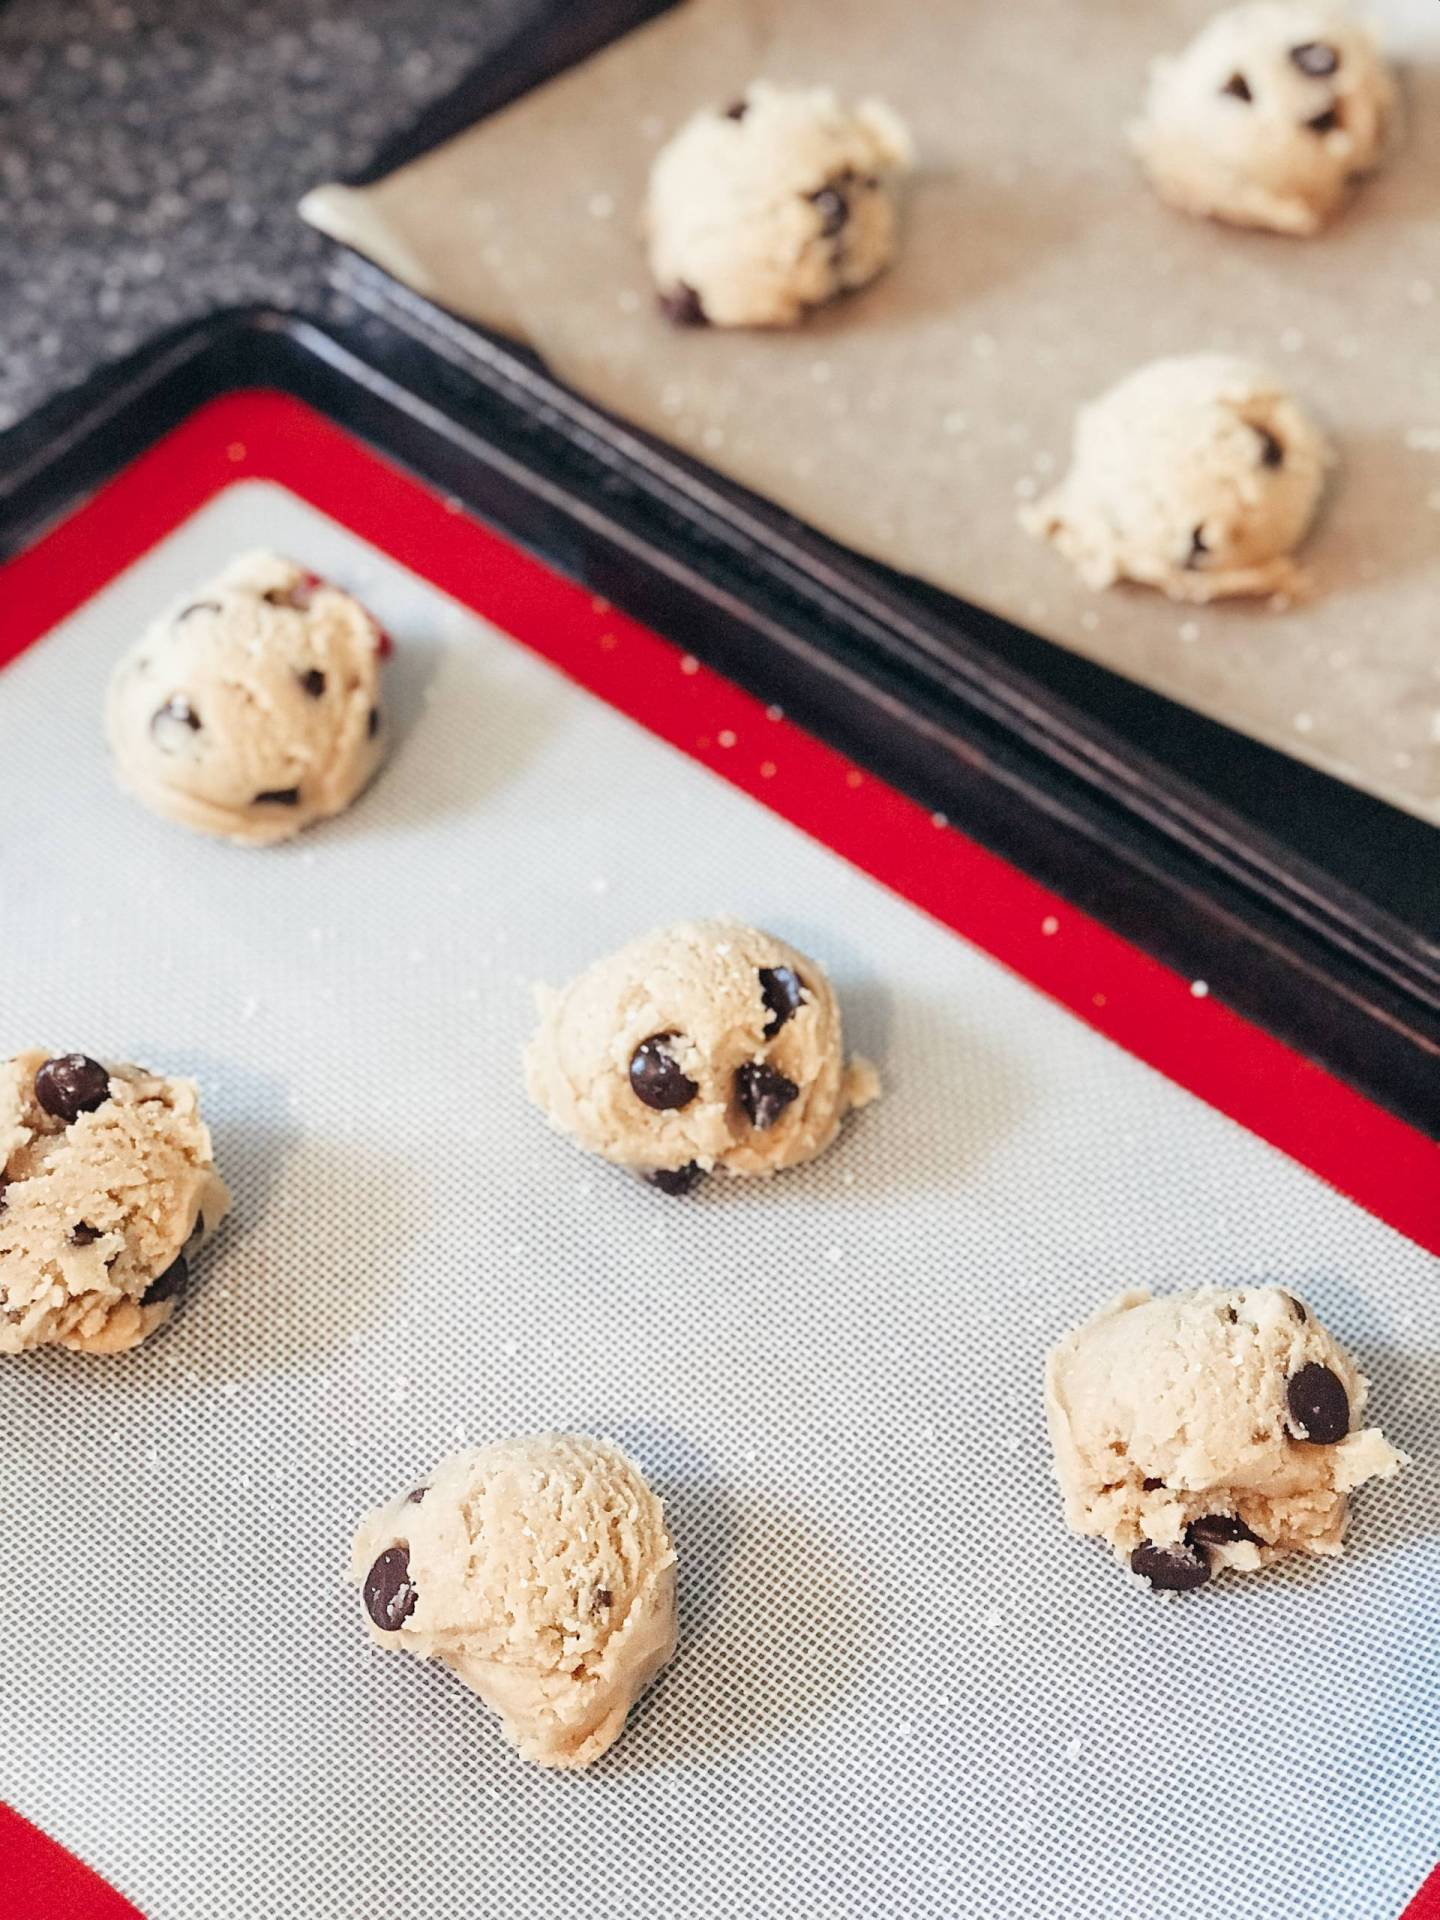 Nothing like baking up something fresh to keep busy during quarantine! These have been my go-to chocolate chip cookies for years because they are PERFECTION. With a more complex flavor profile than your typical Toll House and a larger bakery size, these are sure to impress.